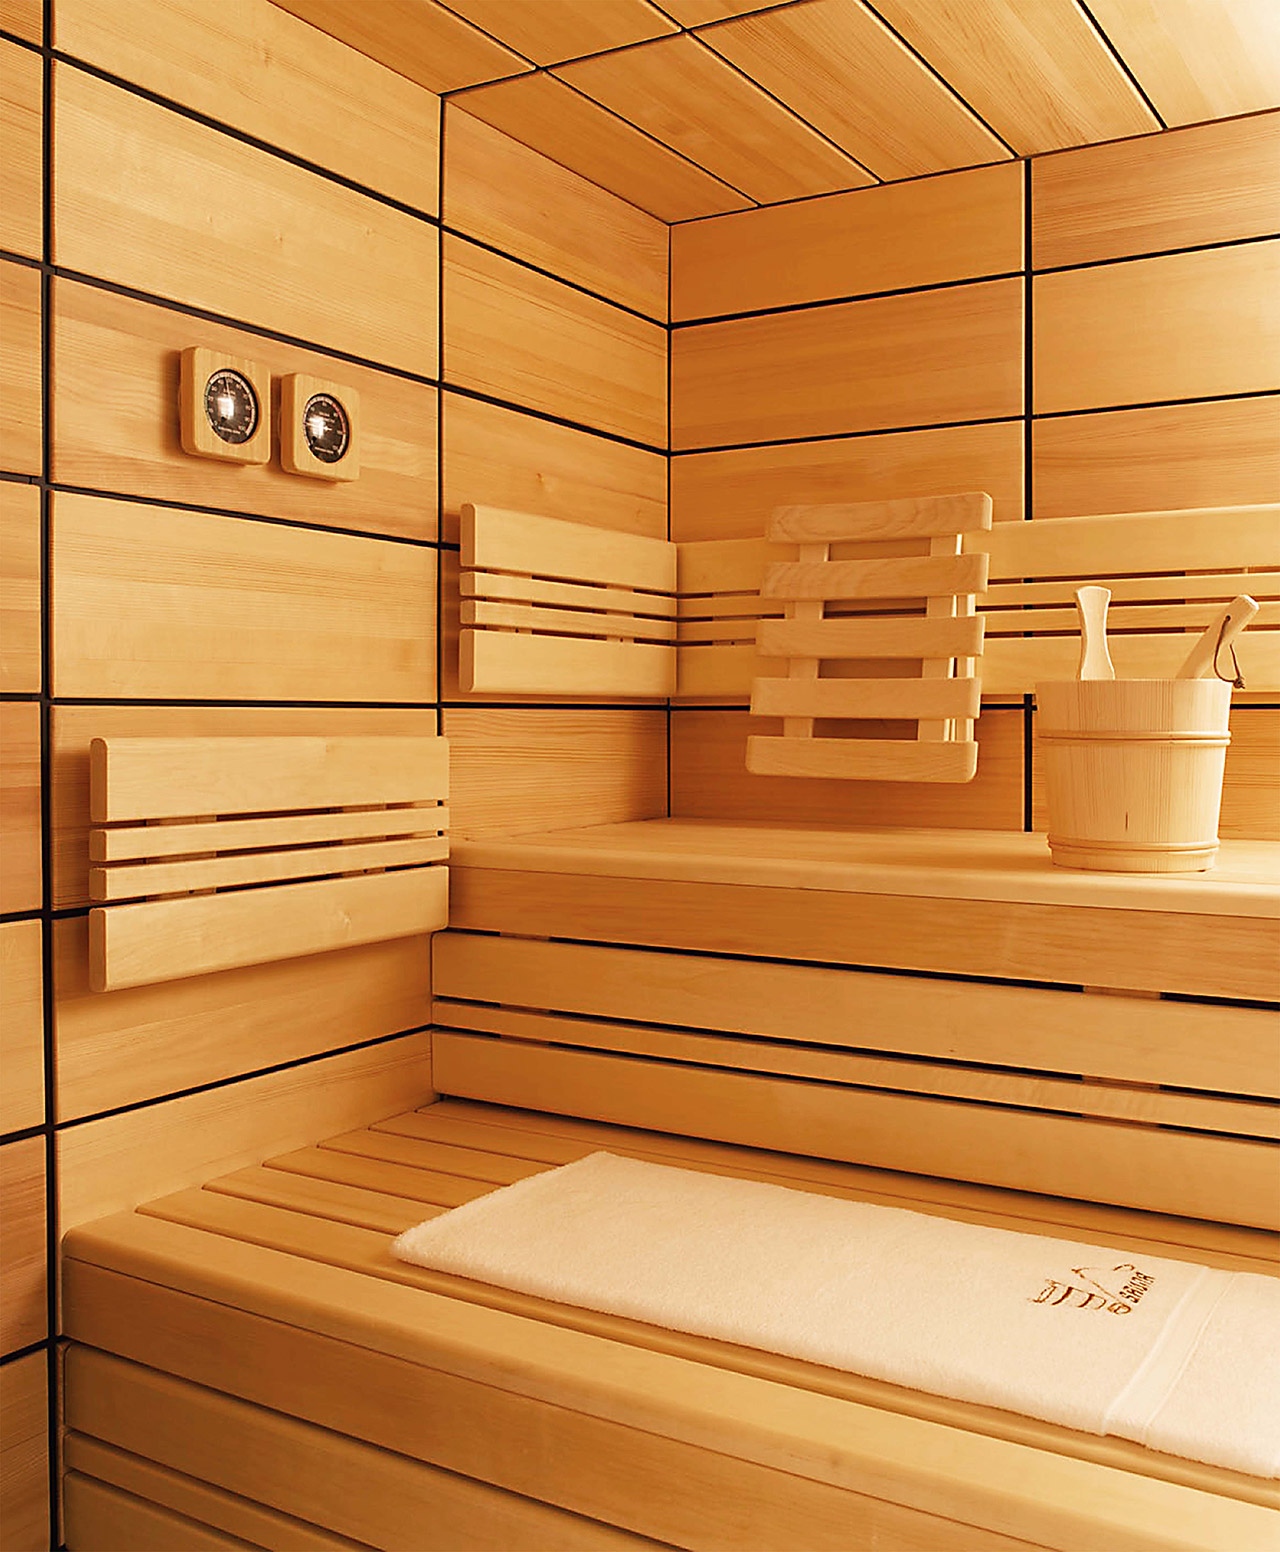 genug sauna f r innen vp96 kyushucon. Black Bedroom Furniture Sets. Home Design Ideas